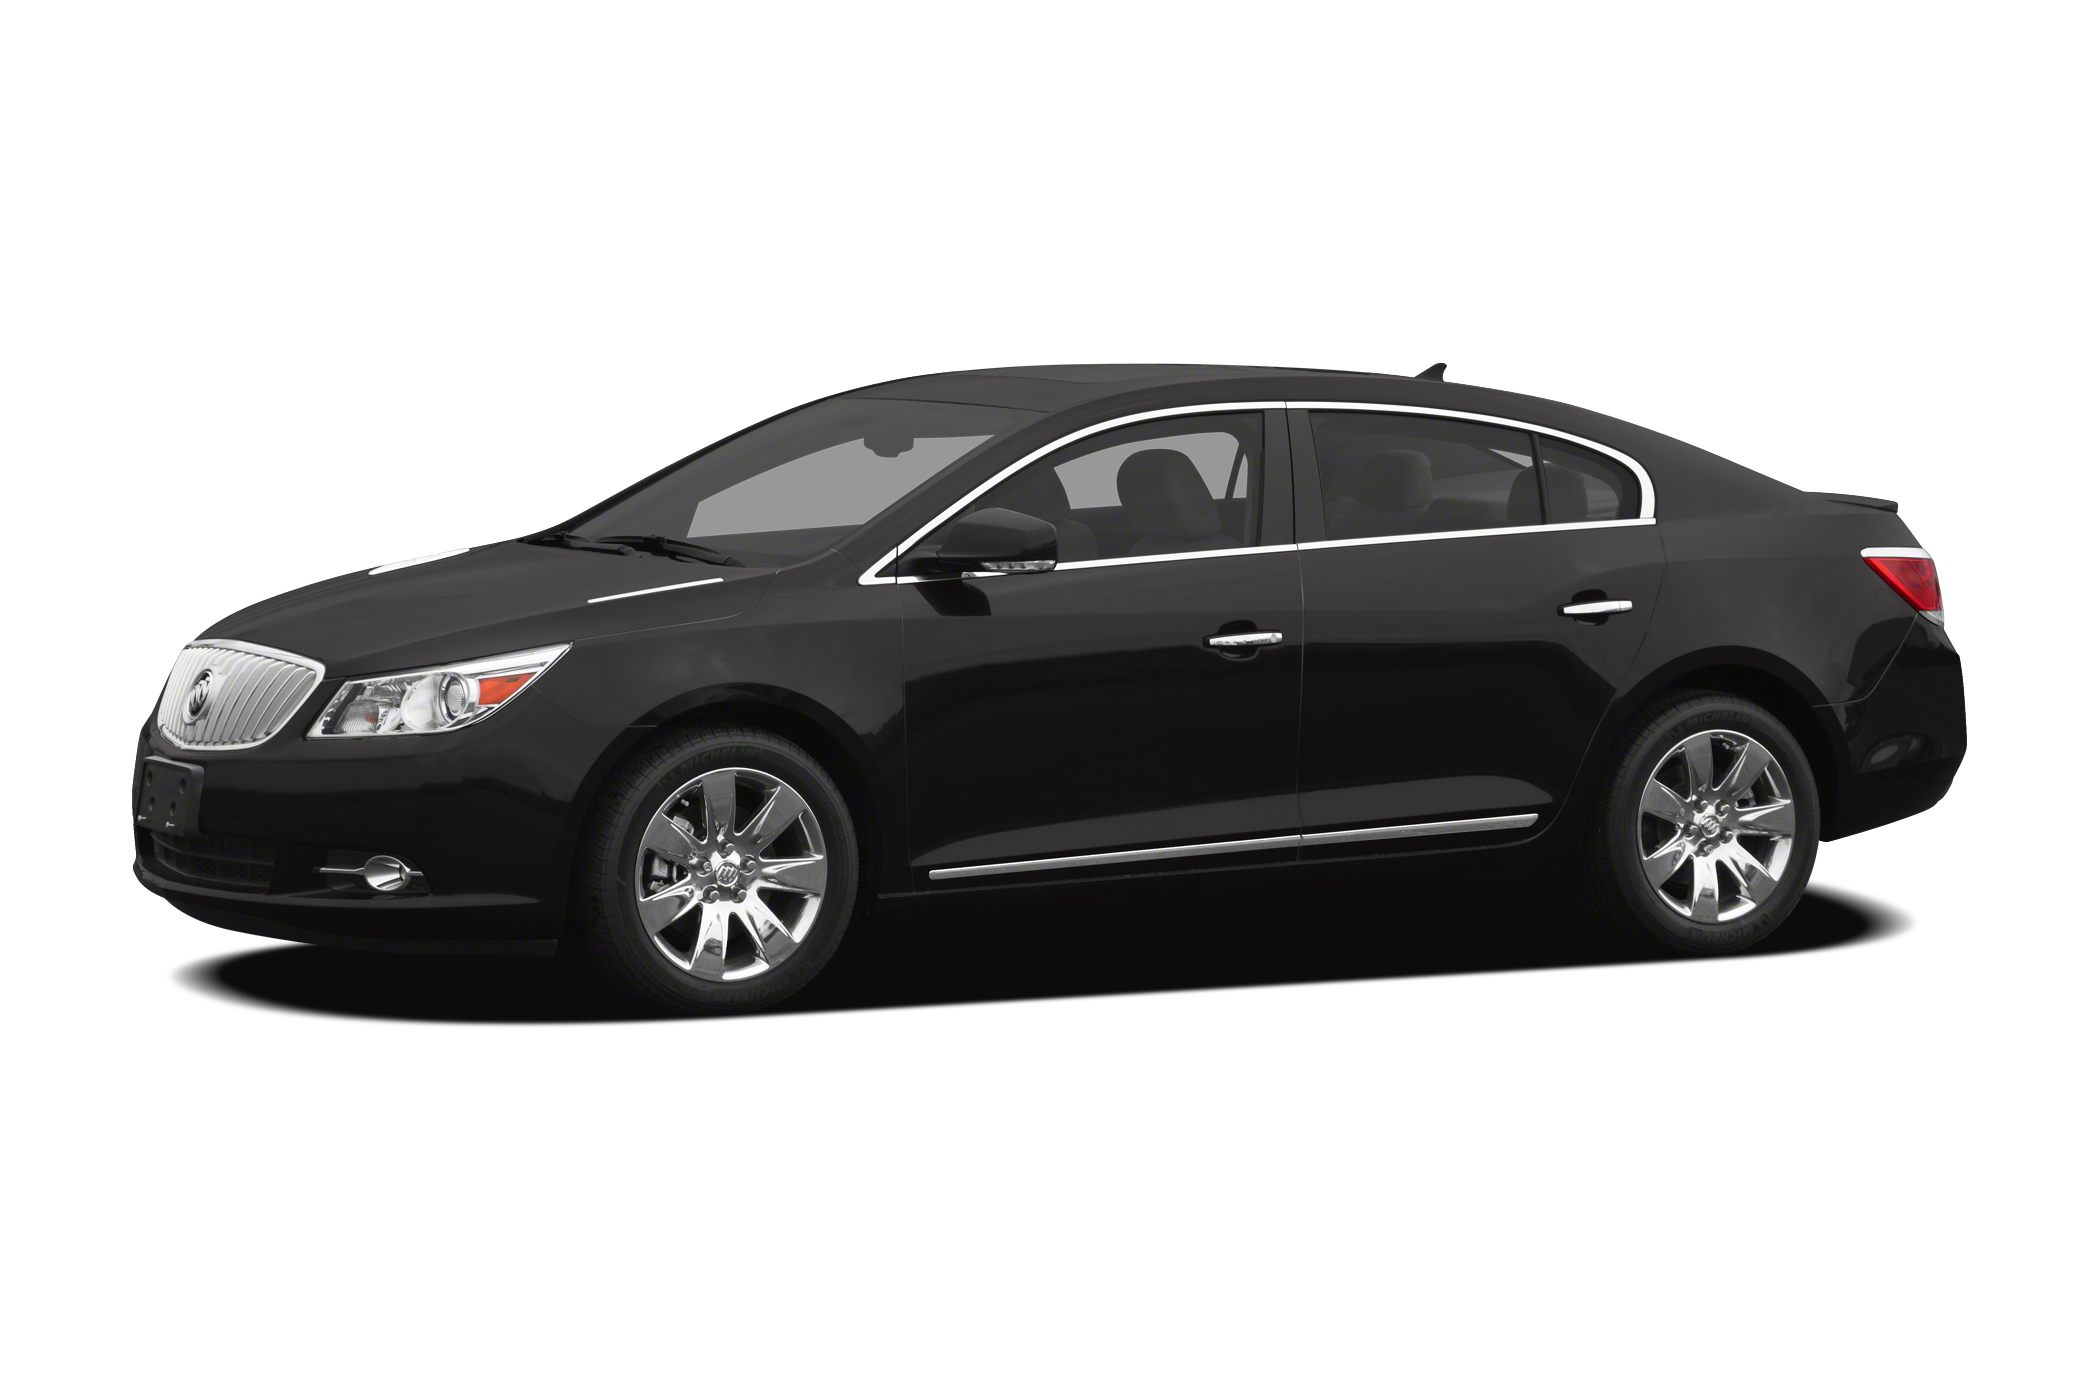 2012 Buick LaCrosse Leather Sedan for sale in Whiteville for $19,980 with 32,493 miles.